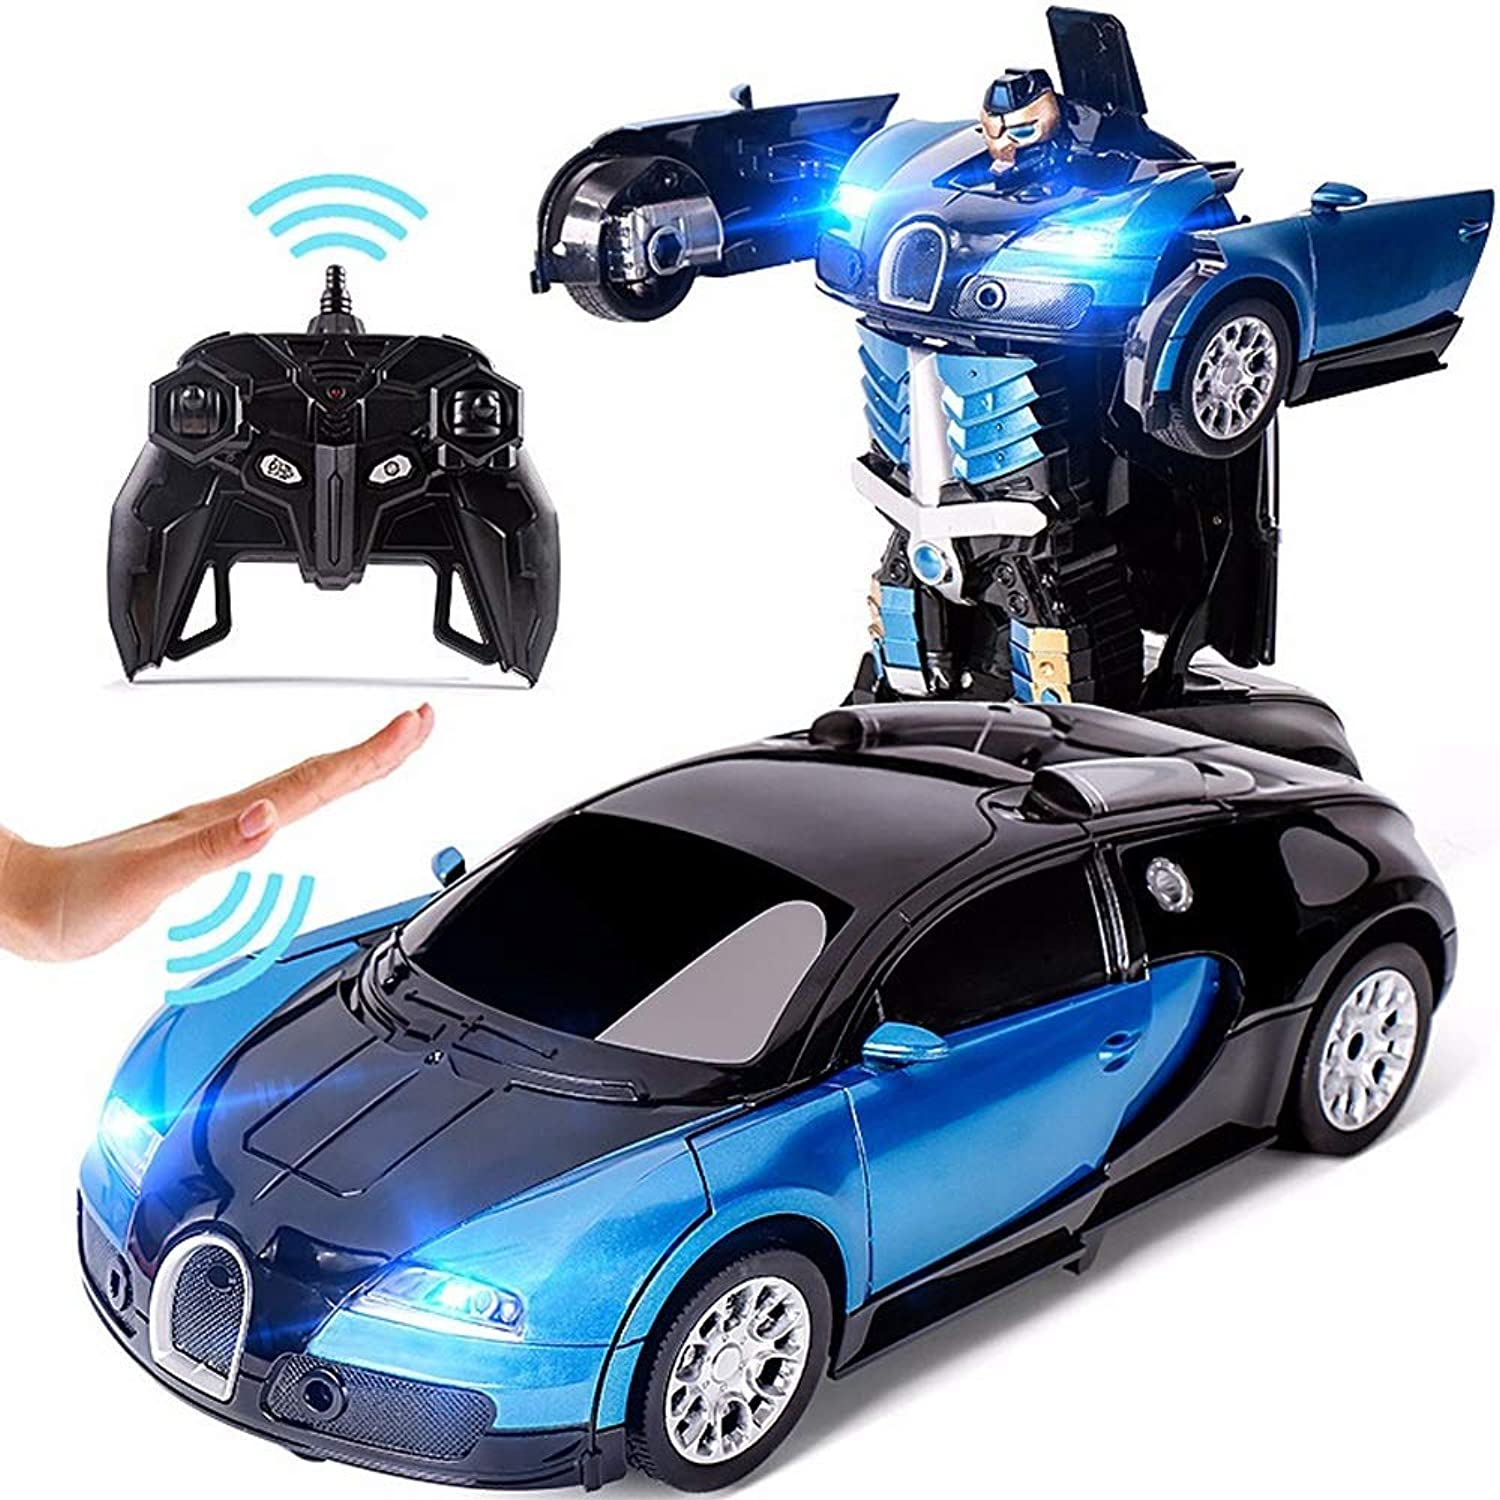 Kikioo AntiDrop 2.4Ghz Buugattii Transformer Remote Control Car Talking Auto Bot RC Drifting Robot Sound FX Lights One Touch Transform Rechargeable Radio Controlled Holiday Birthday Gifts bluee